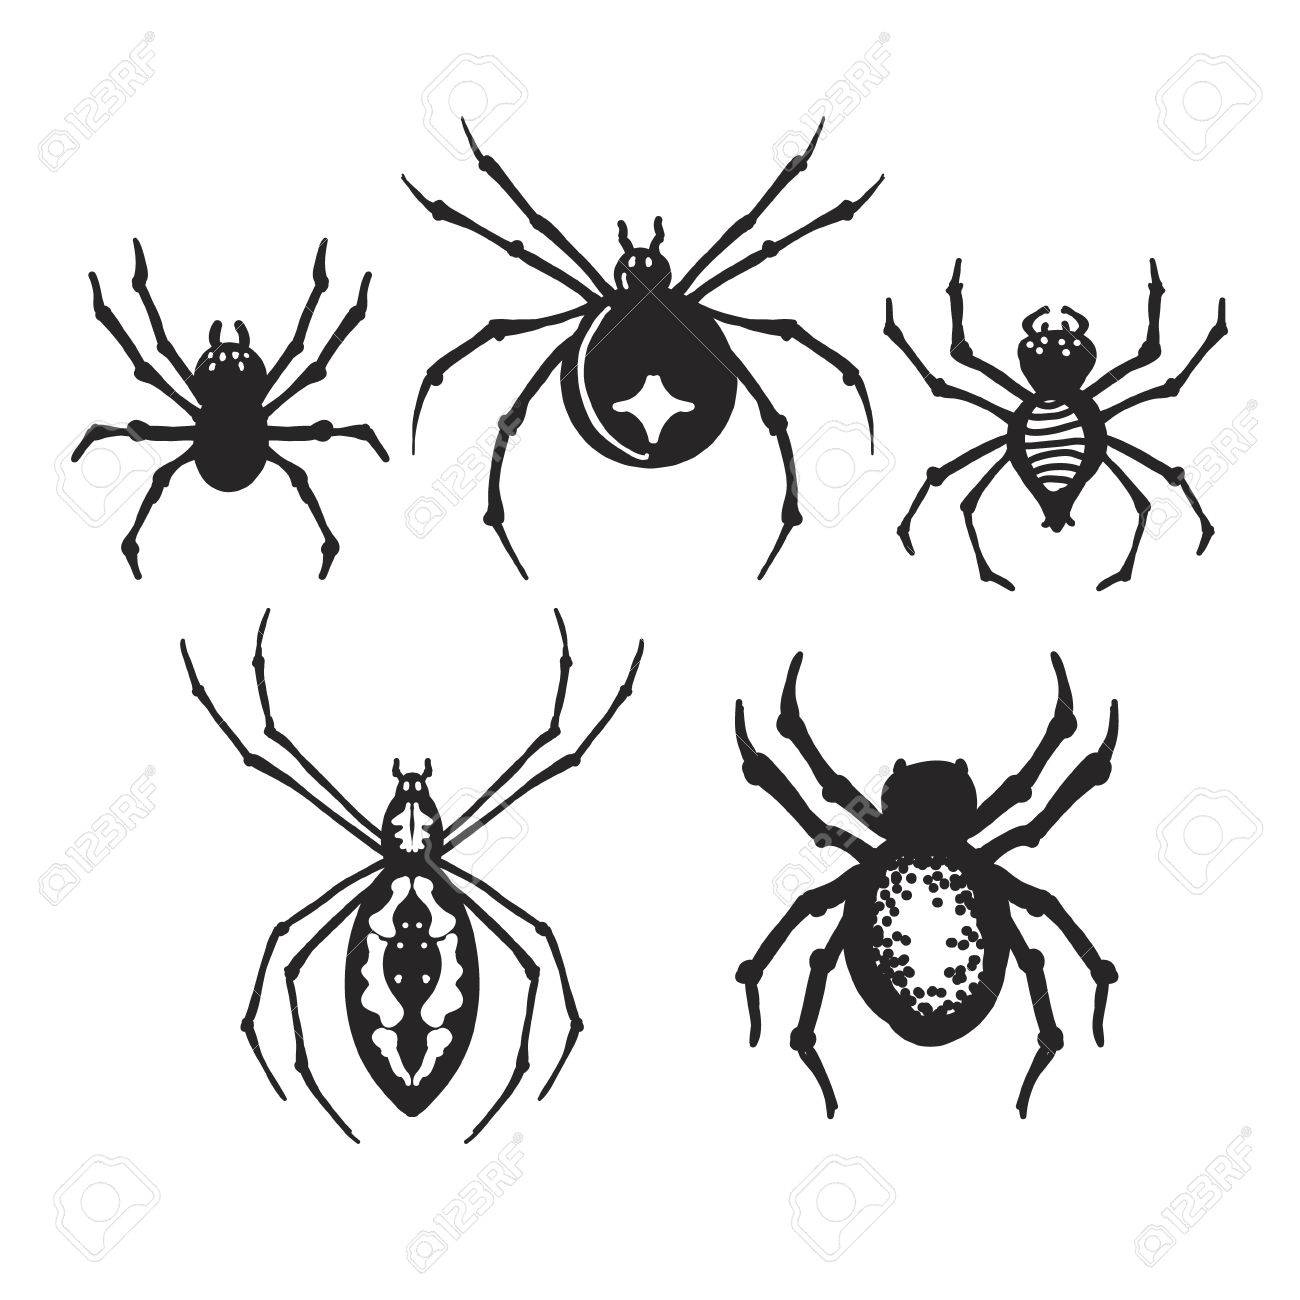 Set Of Decorative Halloween Spiders Royalty Free Cliparts, Vectors ...